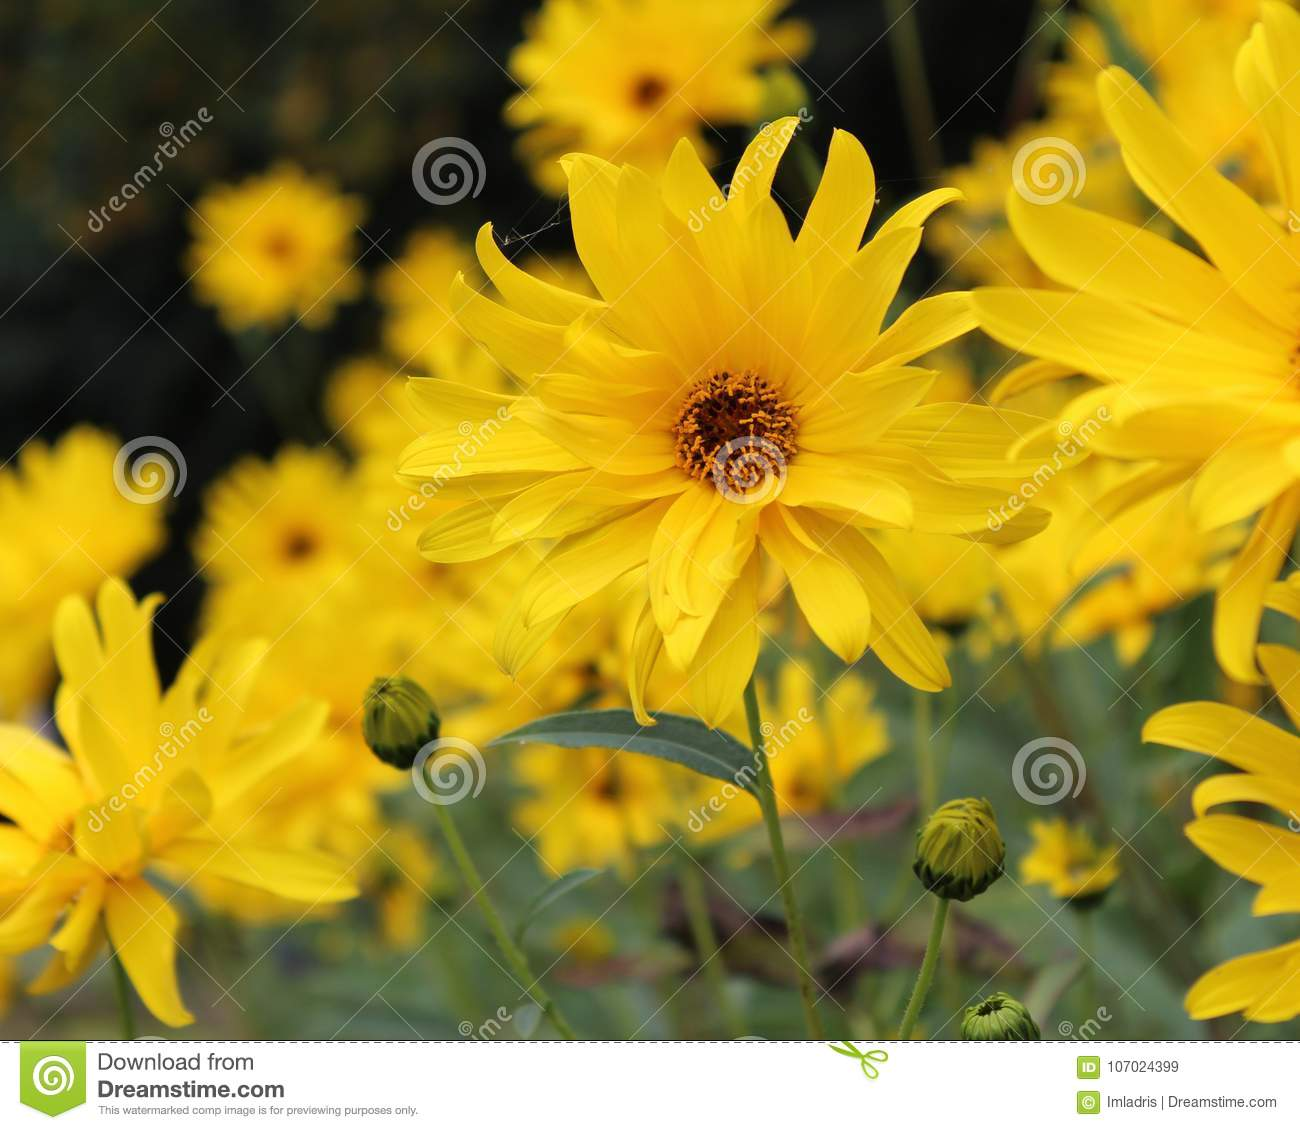 Group of perennial sunflowers stock image image of floral flowers download comp mightylinksfo